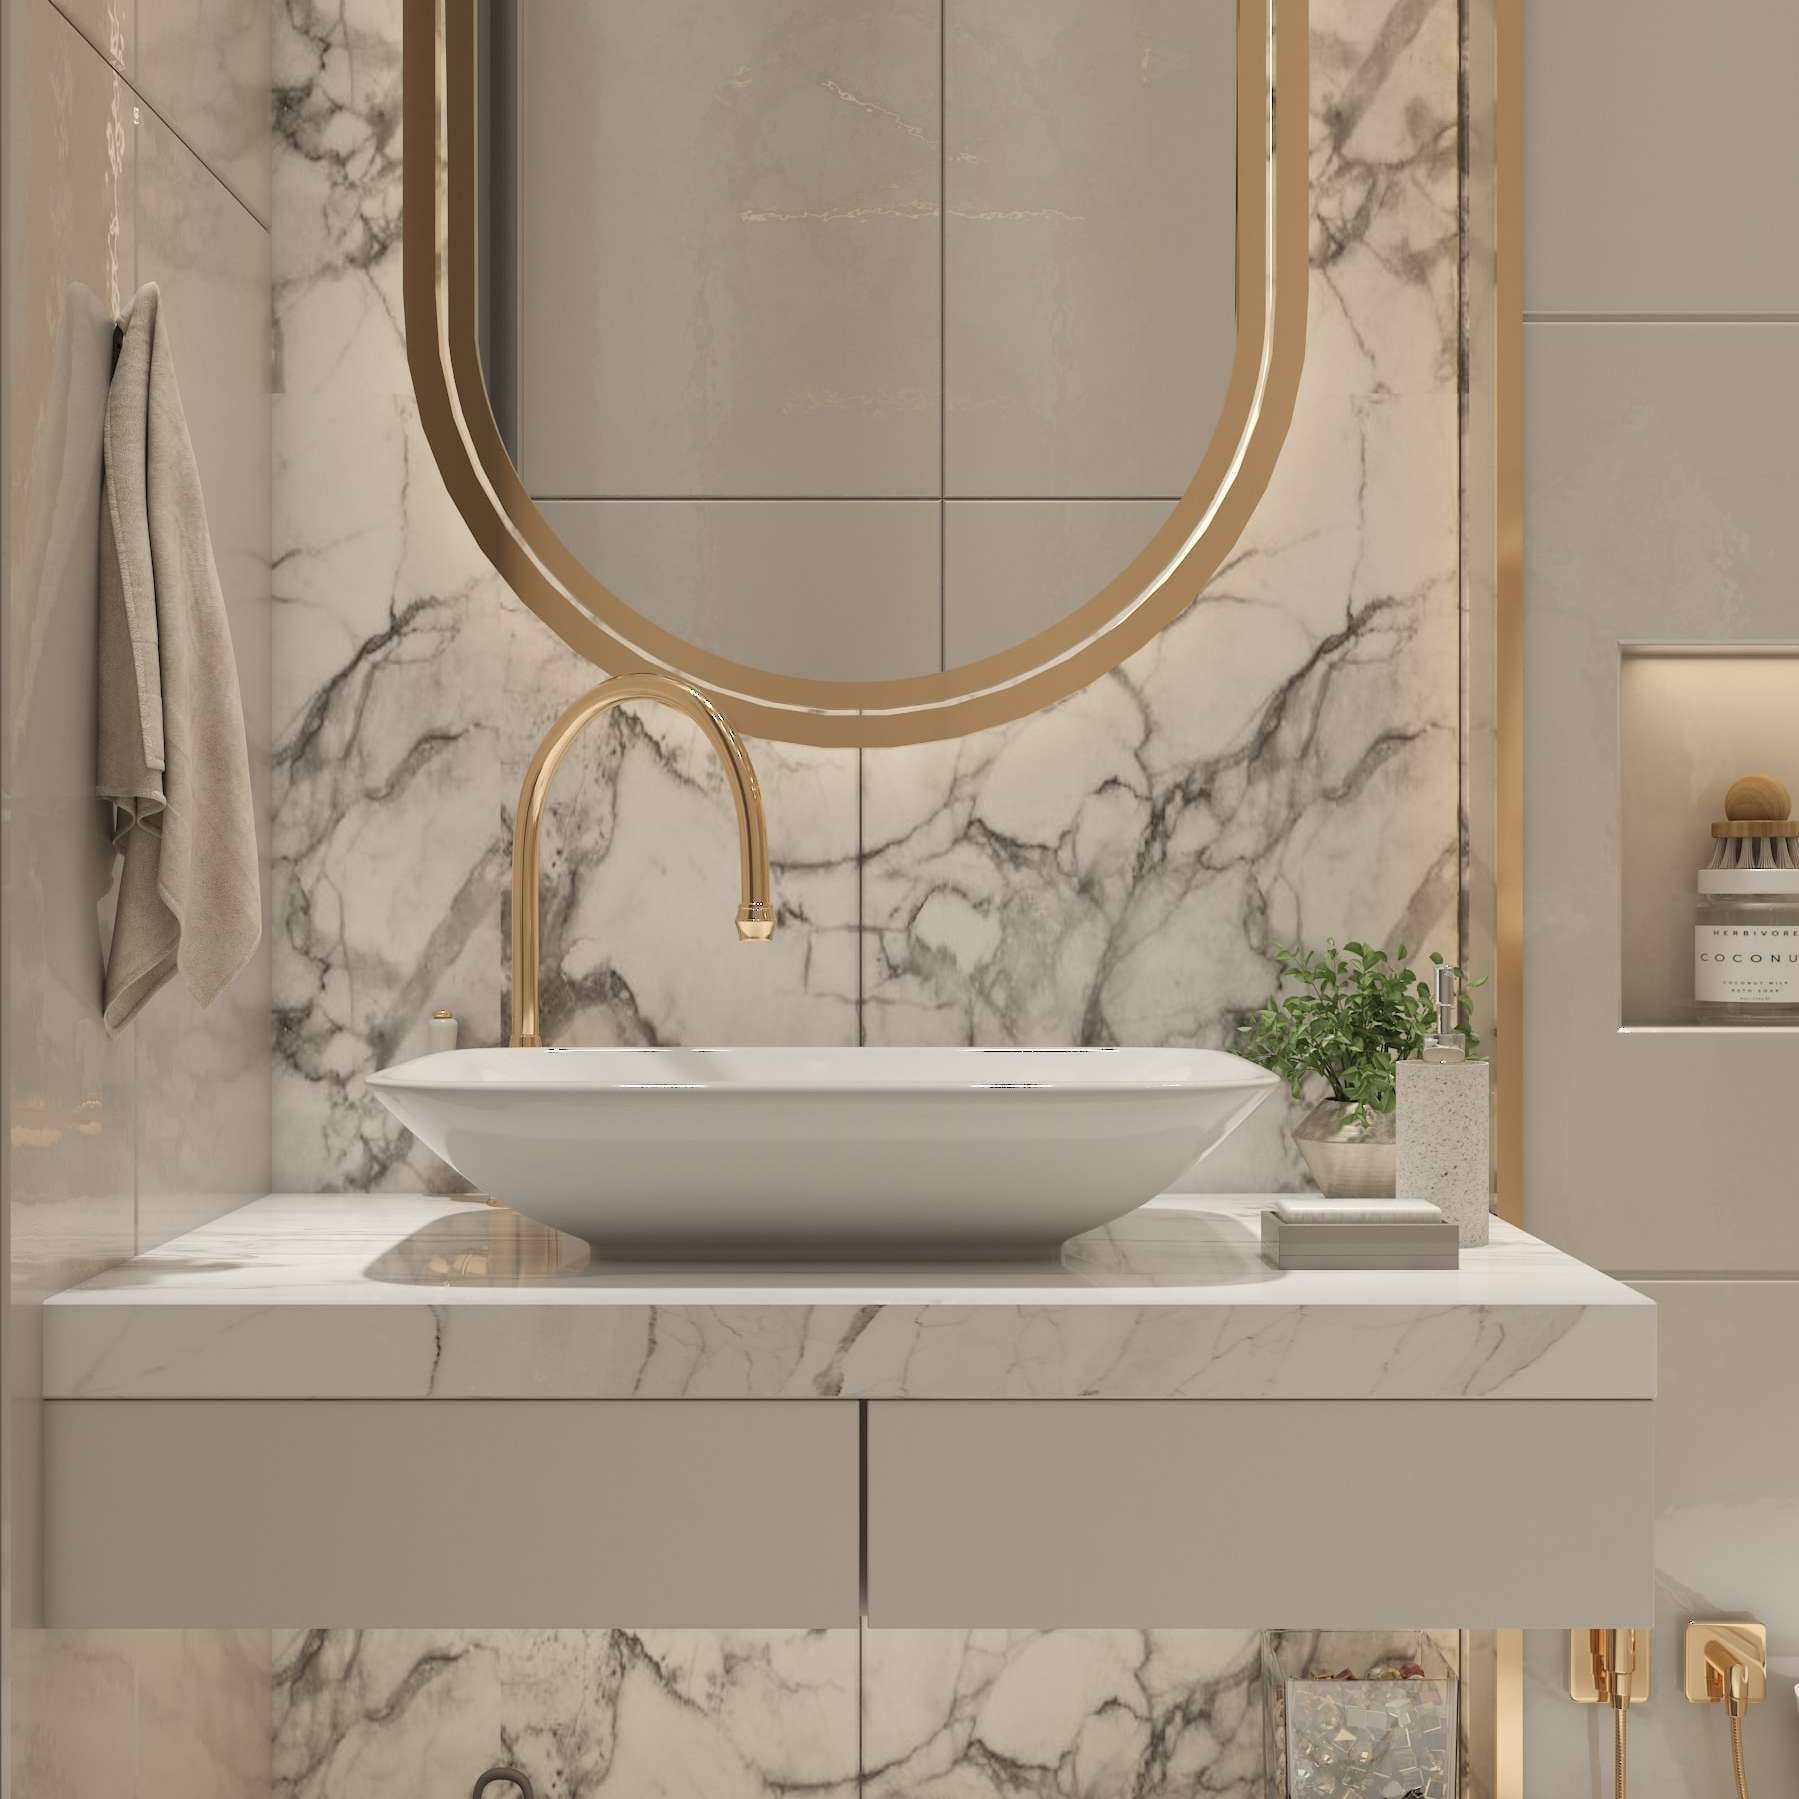 modern bathroom with gold and white accents